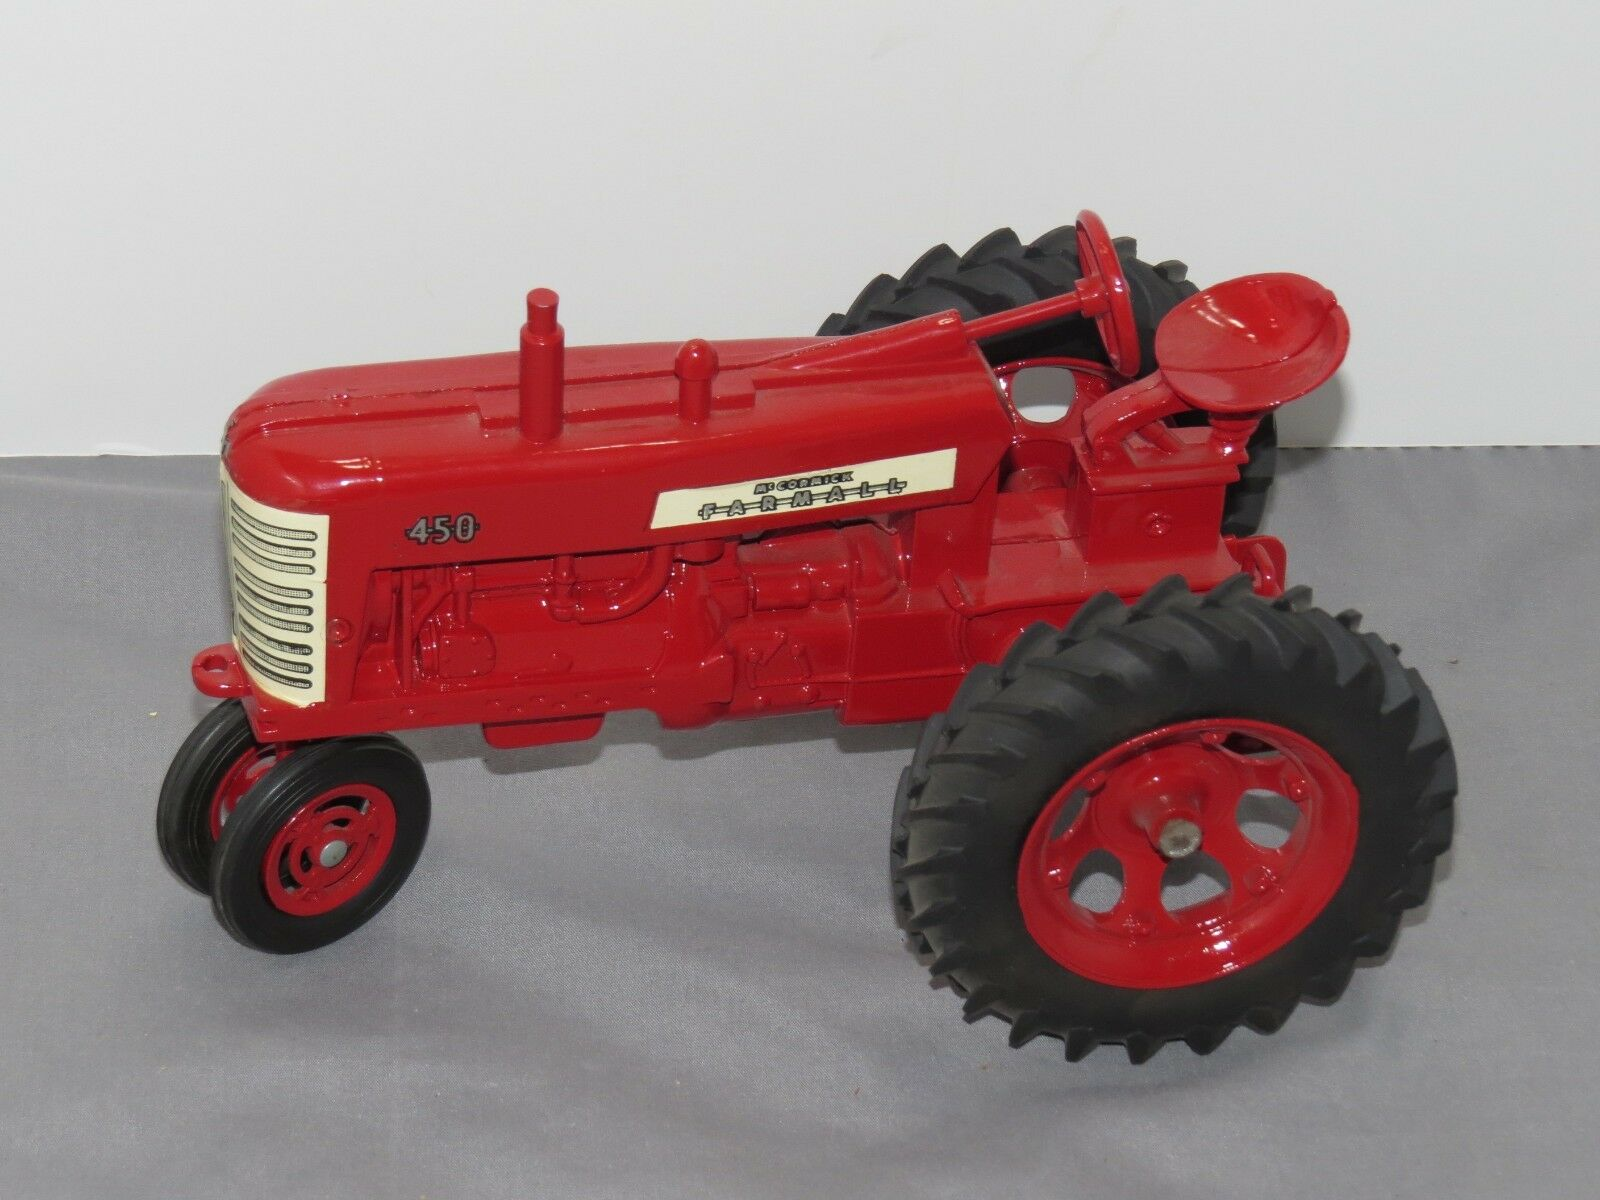 Vintage Vintage Vintage International Harvester IH Farmall Tractor 450 Ertl 1 16 Toy 1957 red st 872cf5